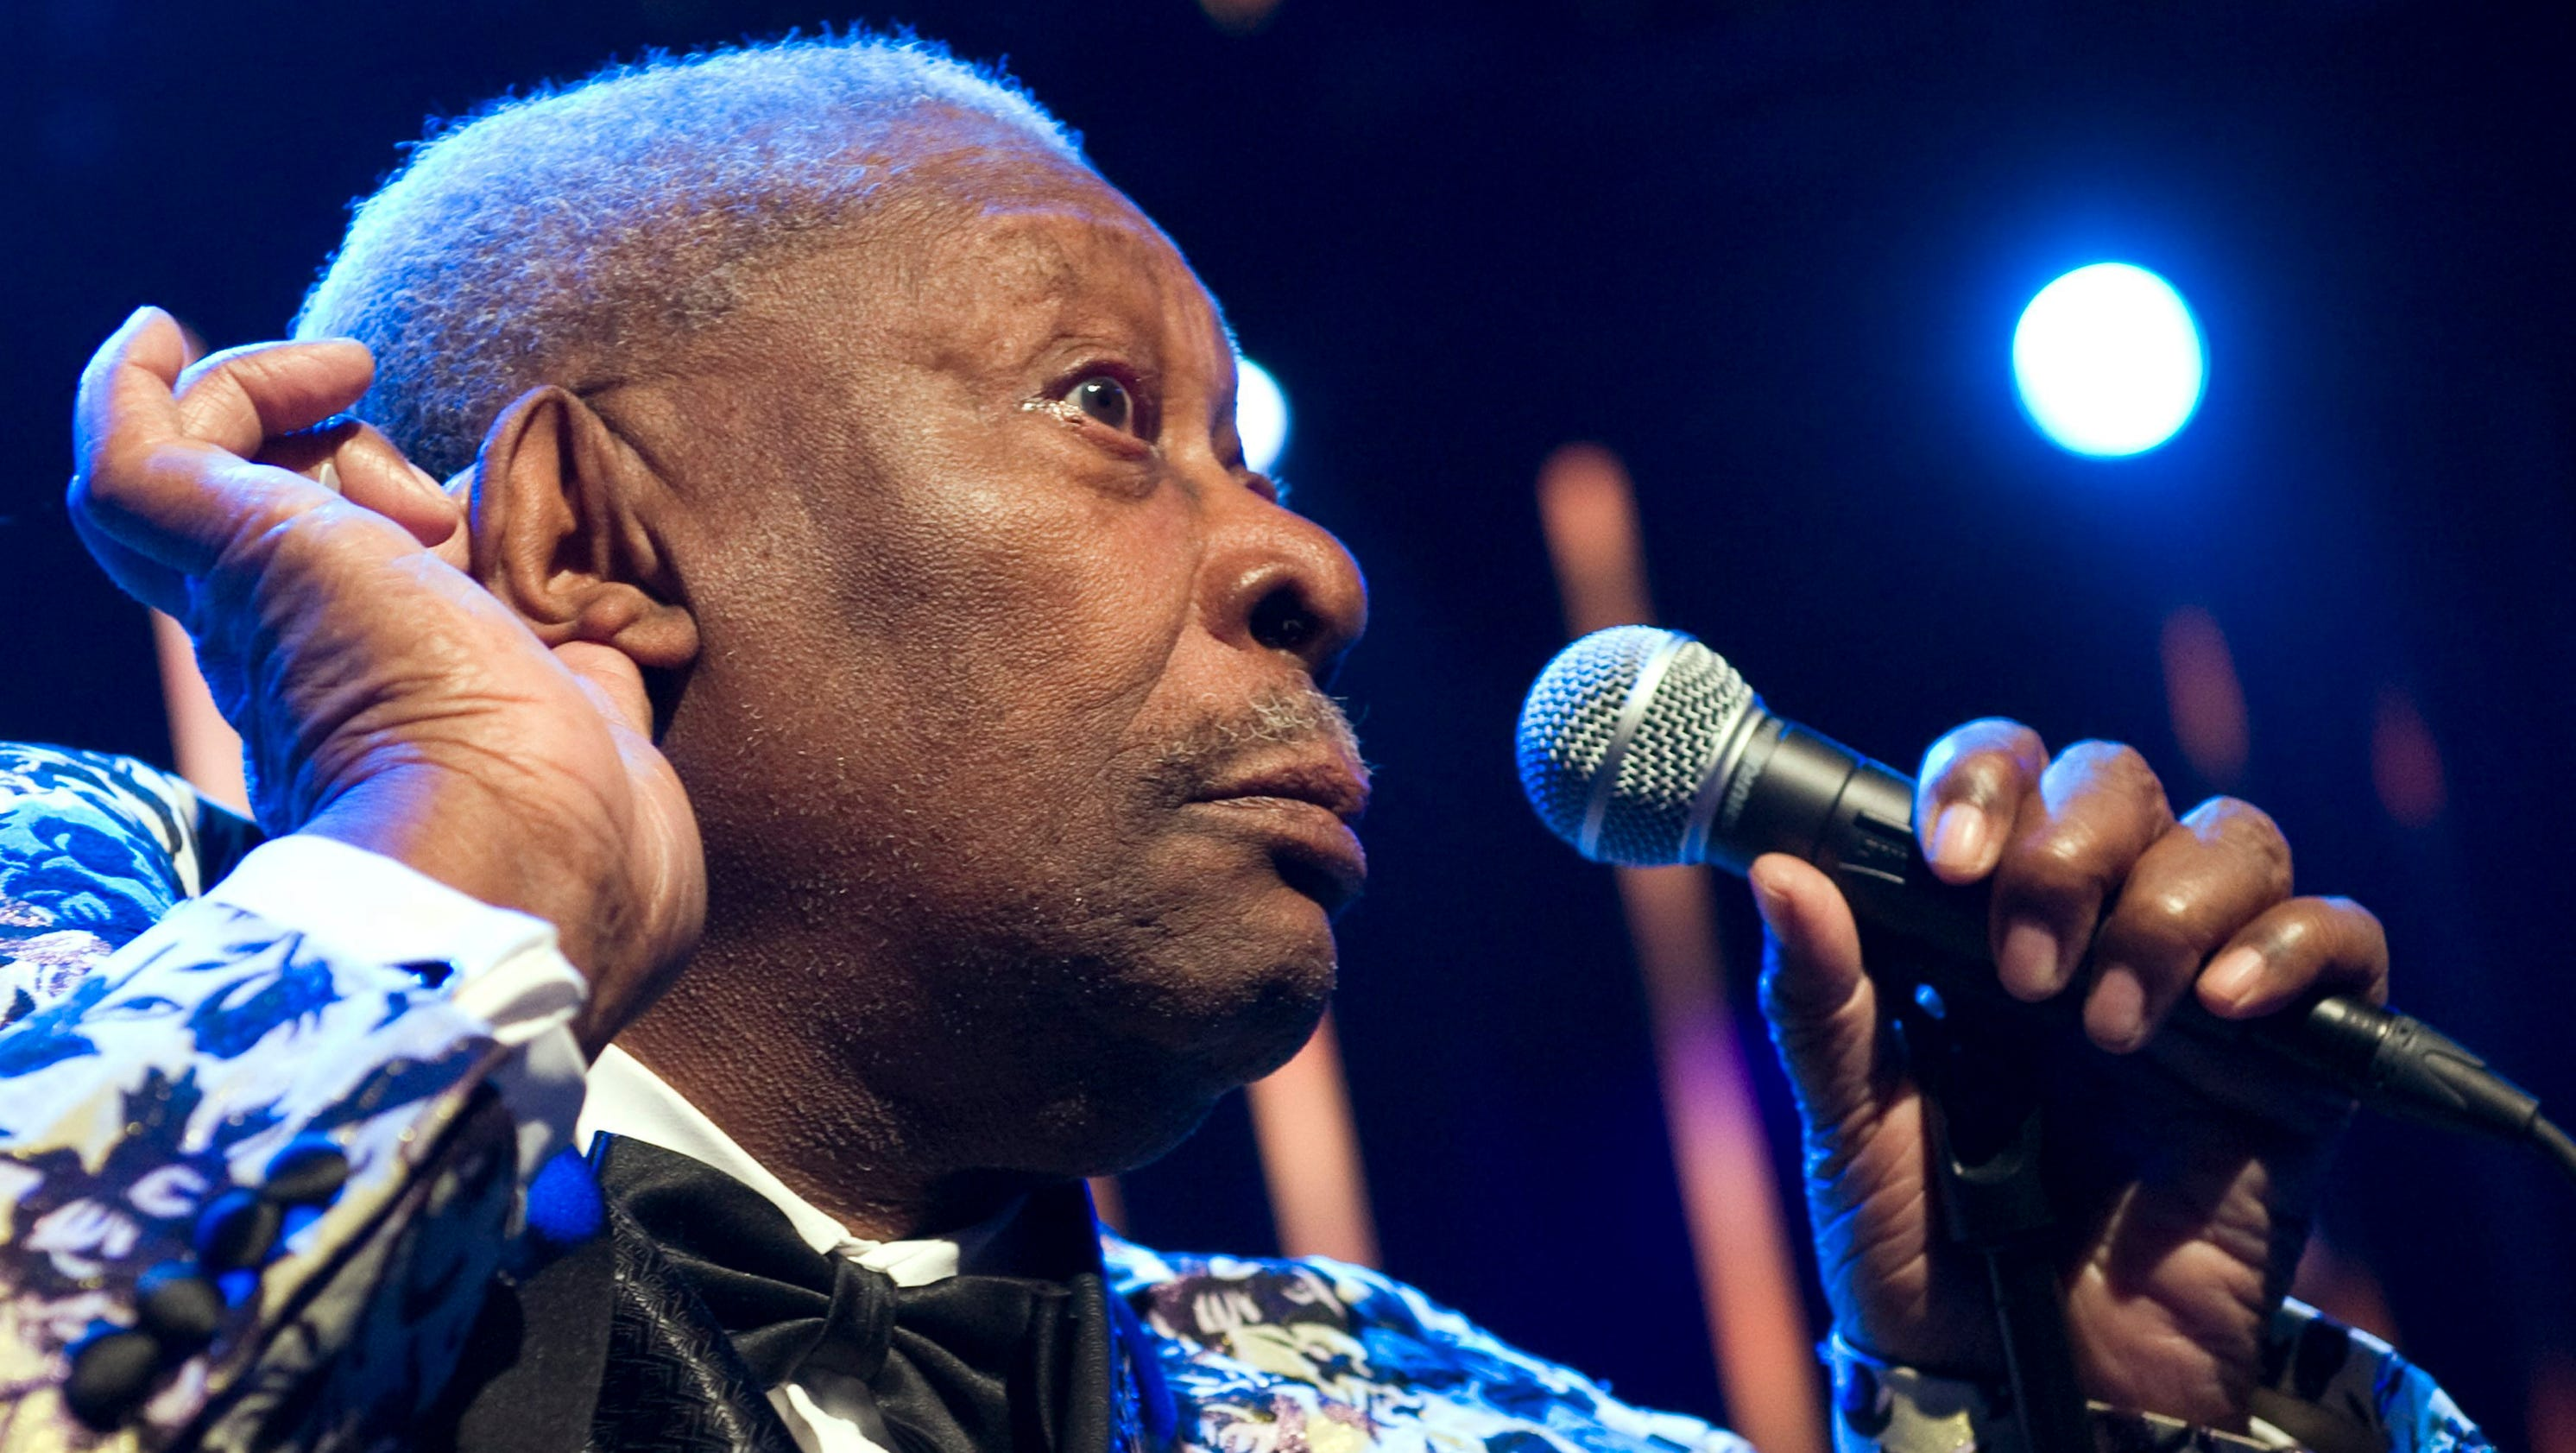 the life and musical legendary of bb king In 1949, the legend goes, bb king ran into a burning building to save a  came  to stand, in the public's imagination, for the kind of music he played  he kept  evangelizing for the blues on the radio for much of his life, and.